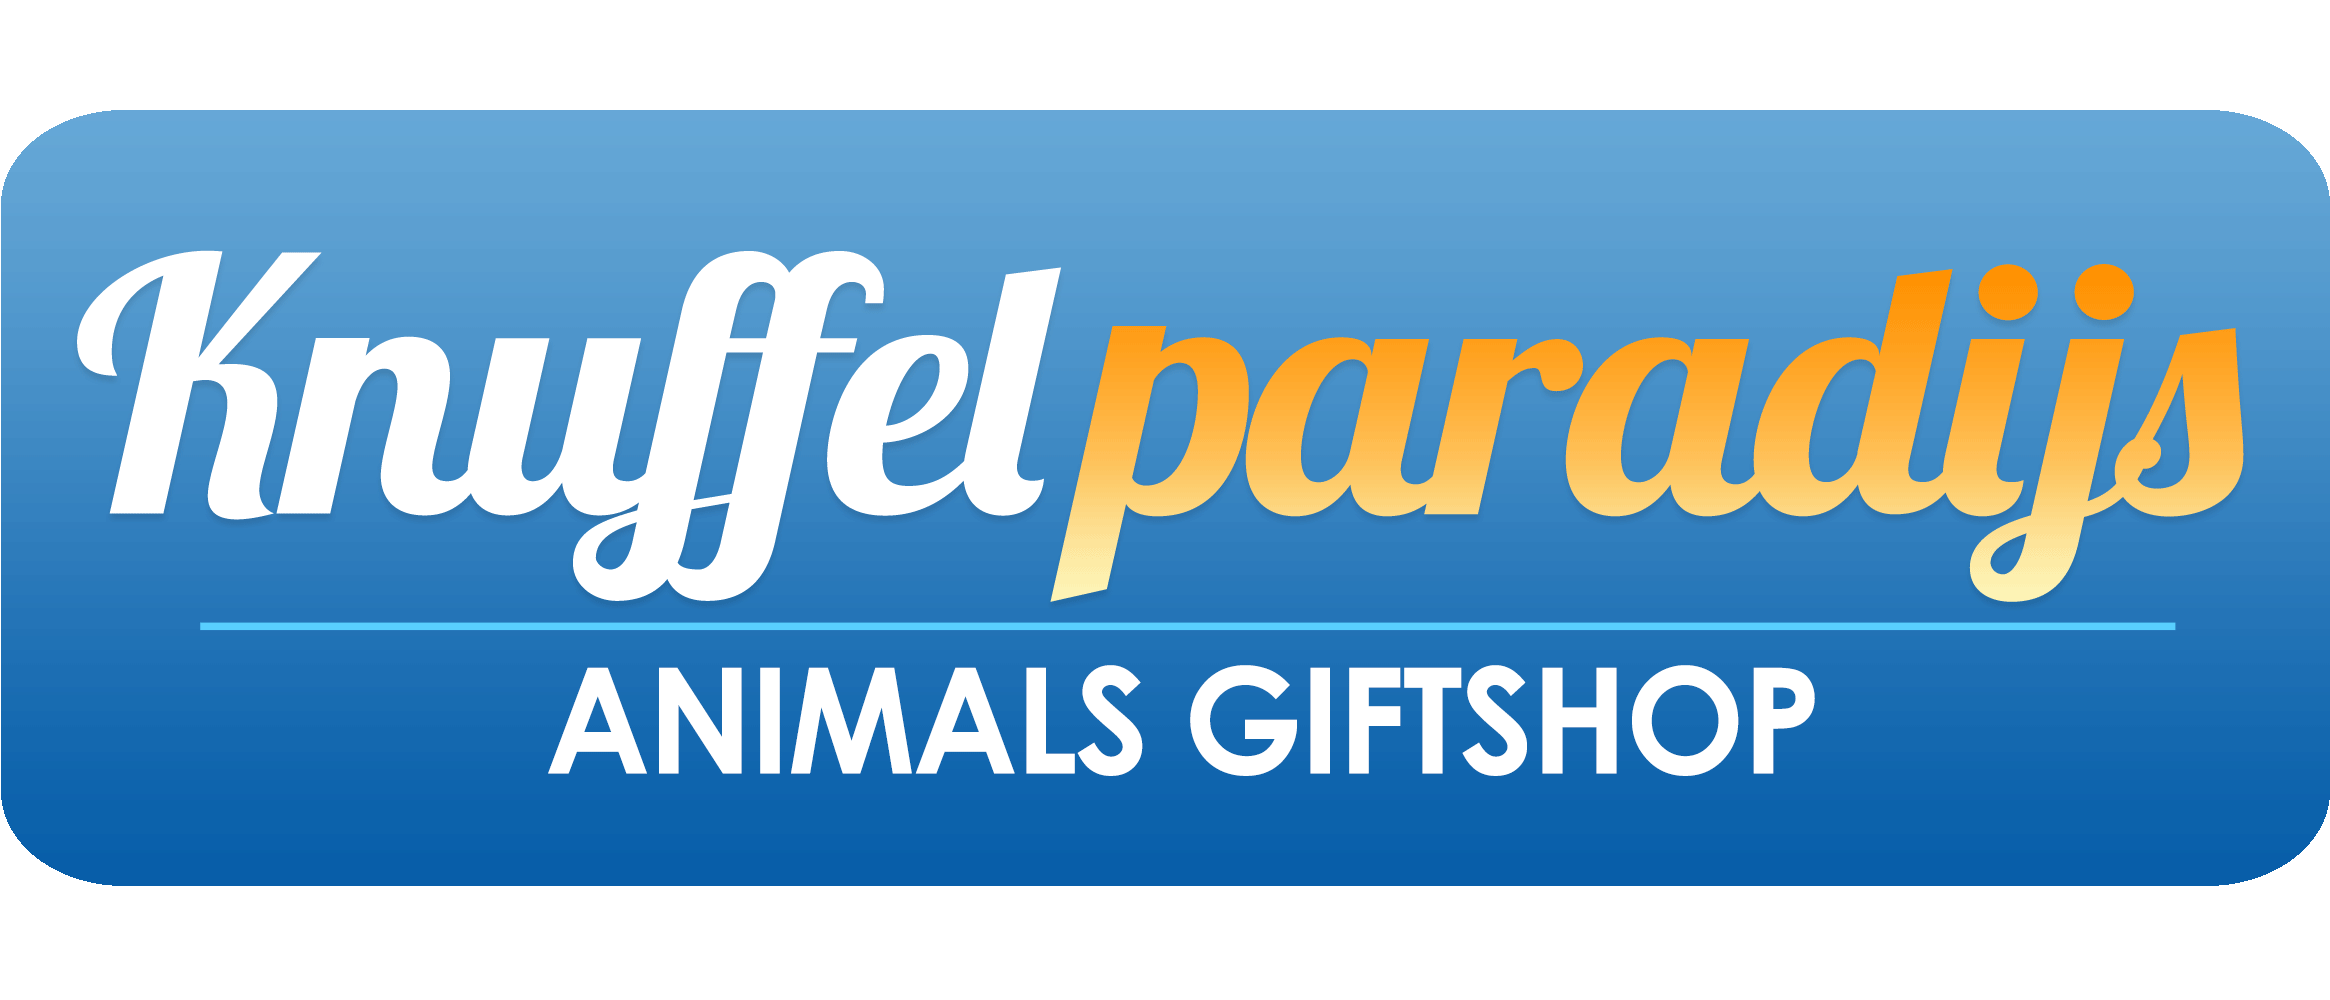 Animals-giftshop.nl